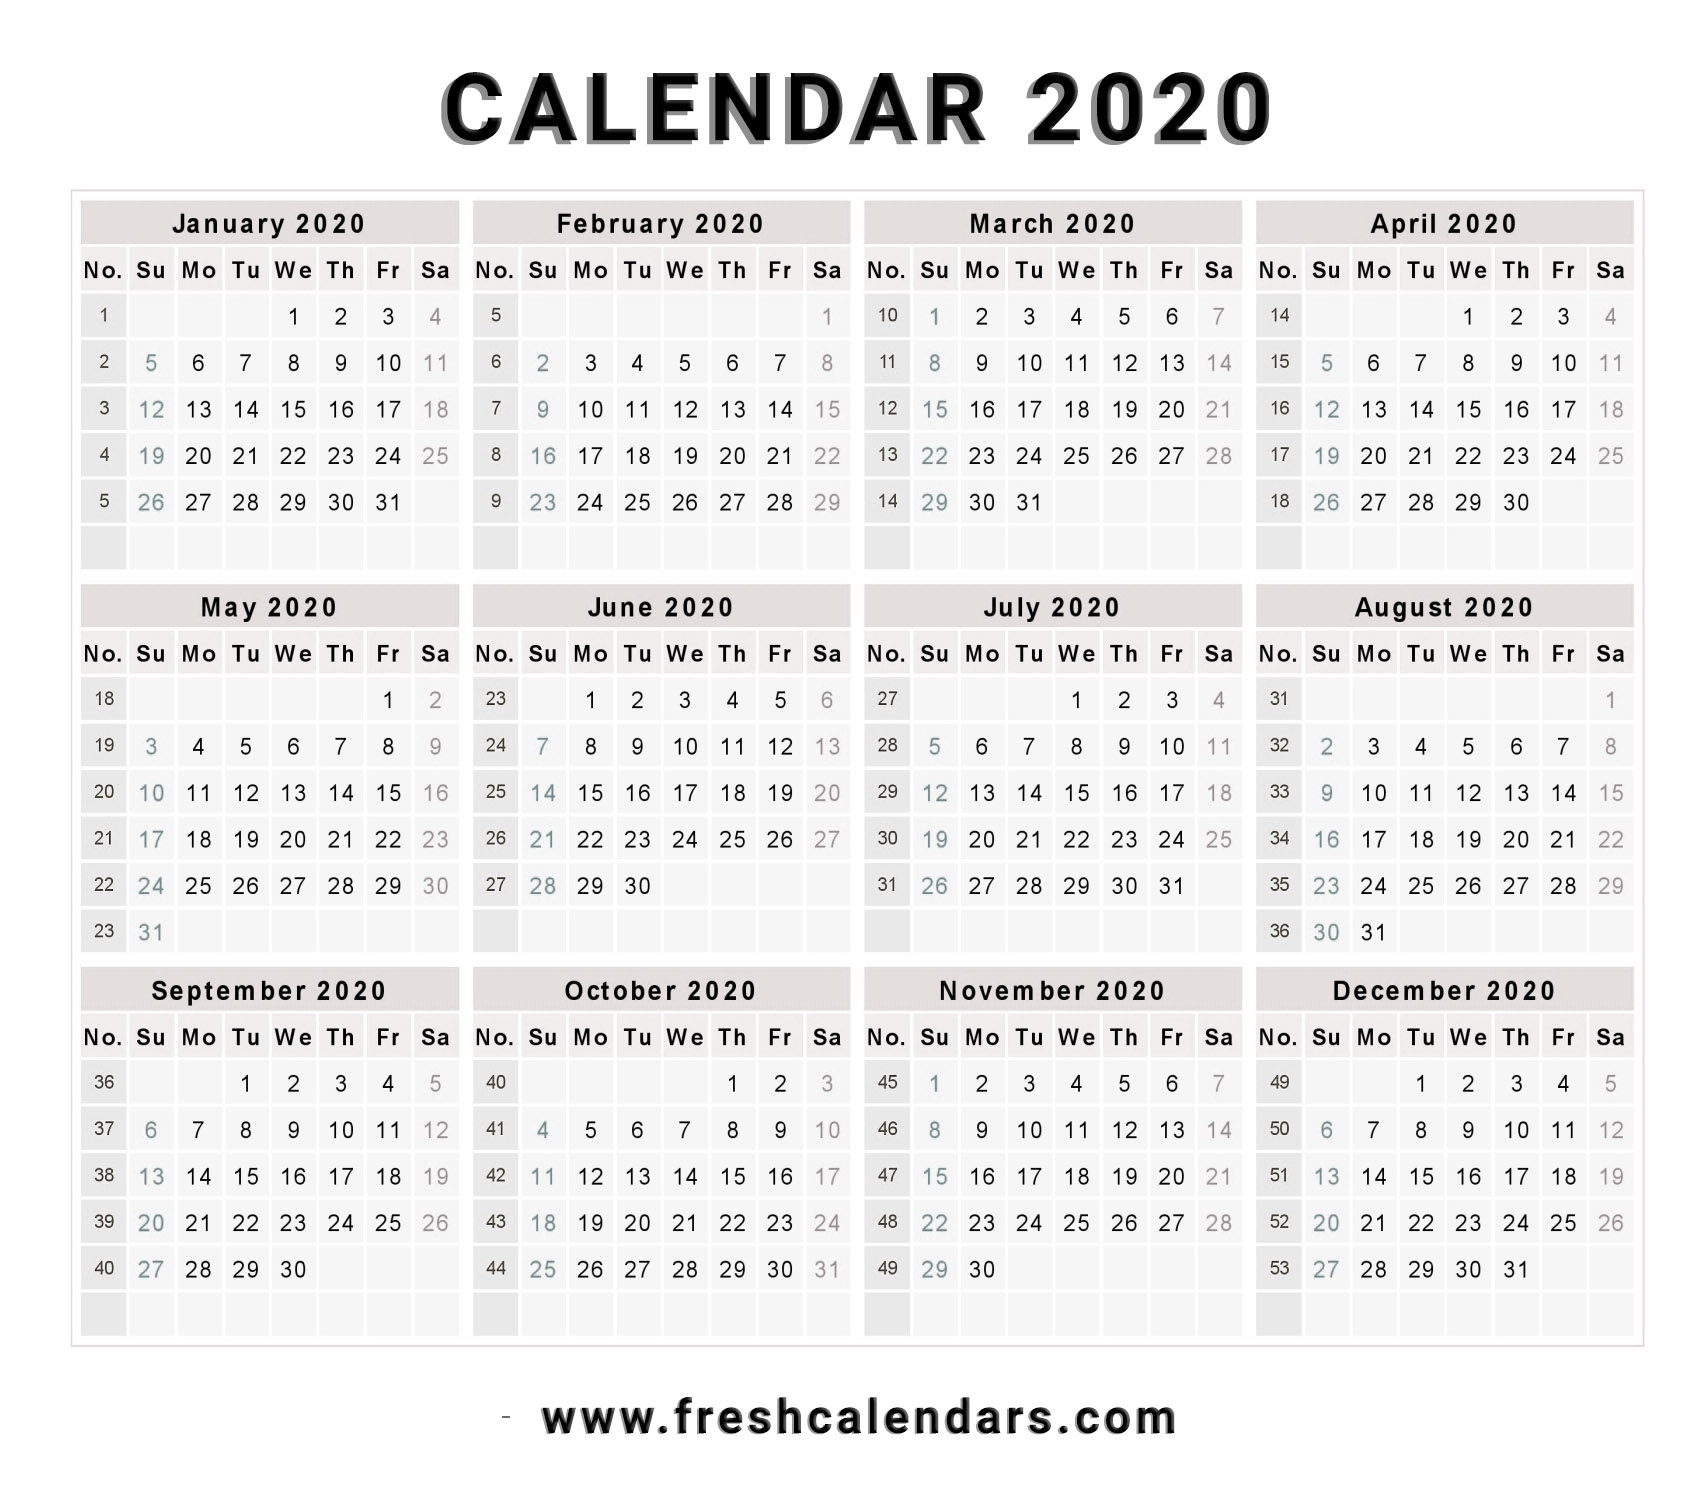 2020 Calendar regarding 2020 Week Wise Calendar